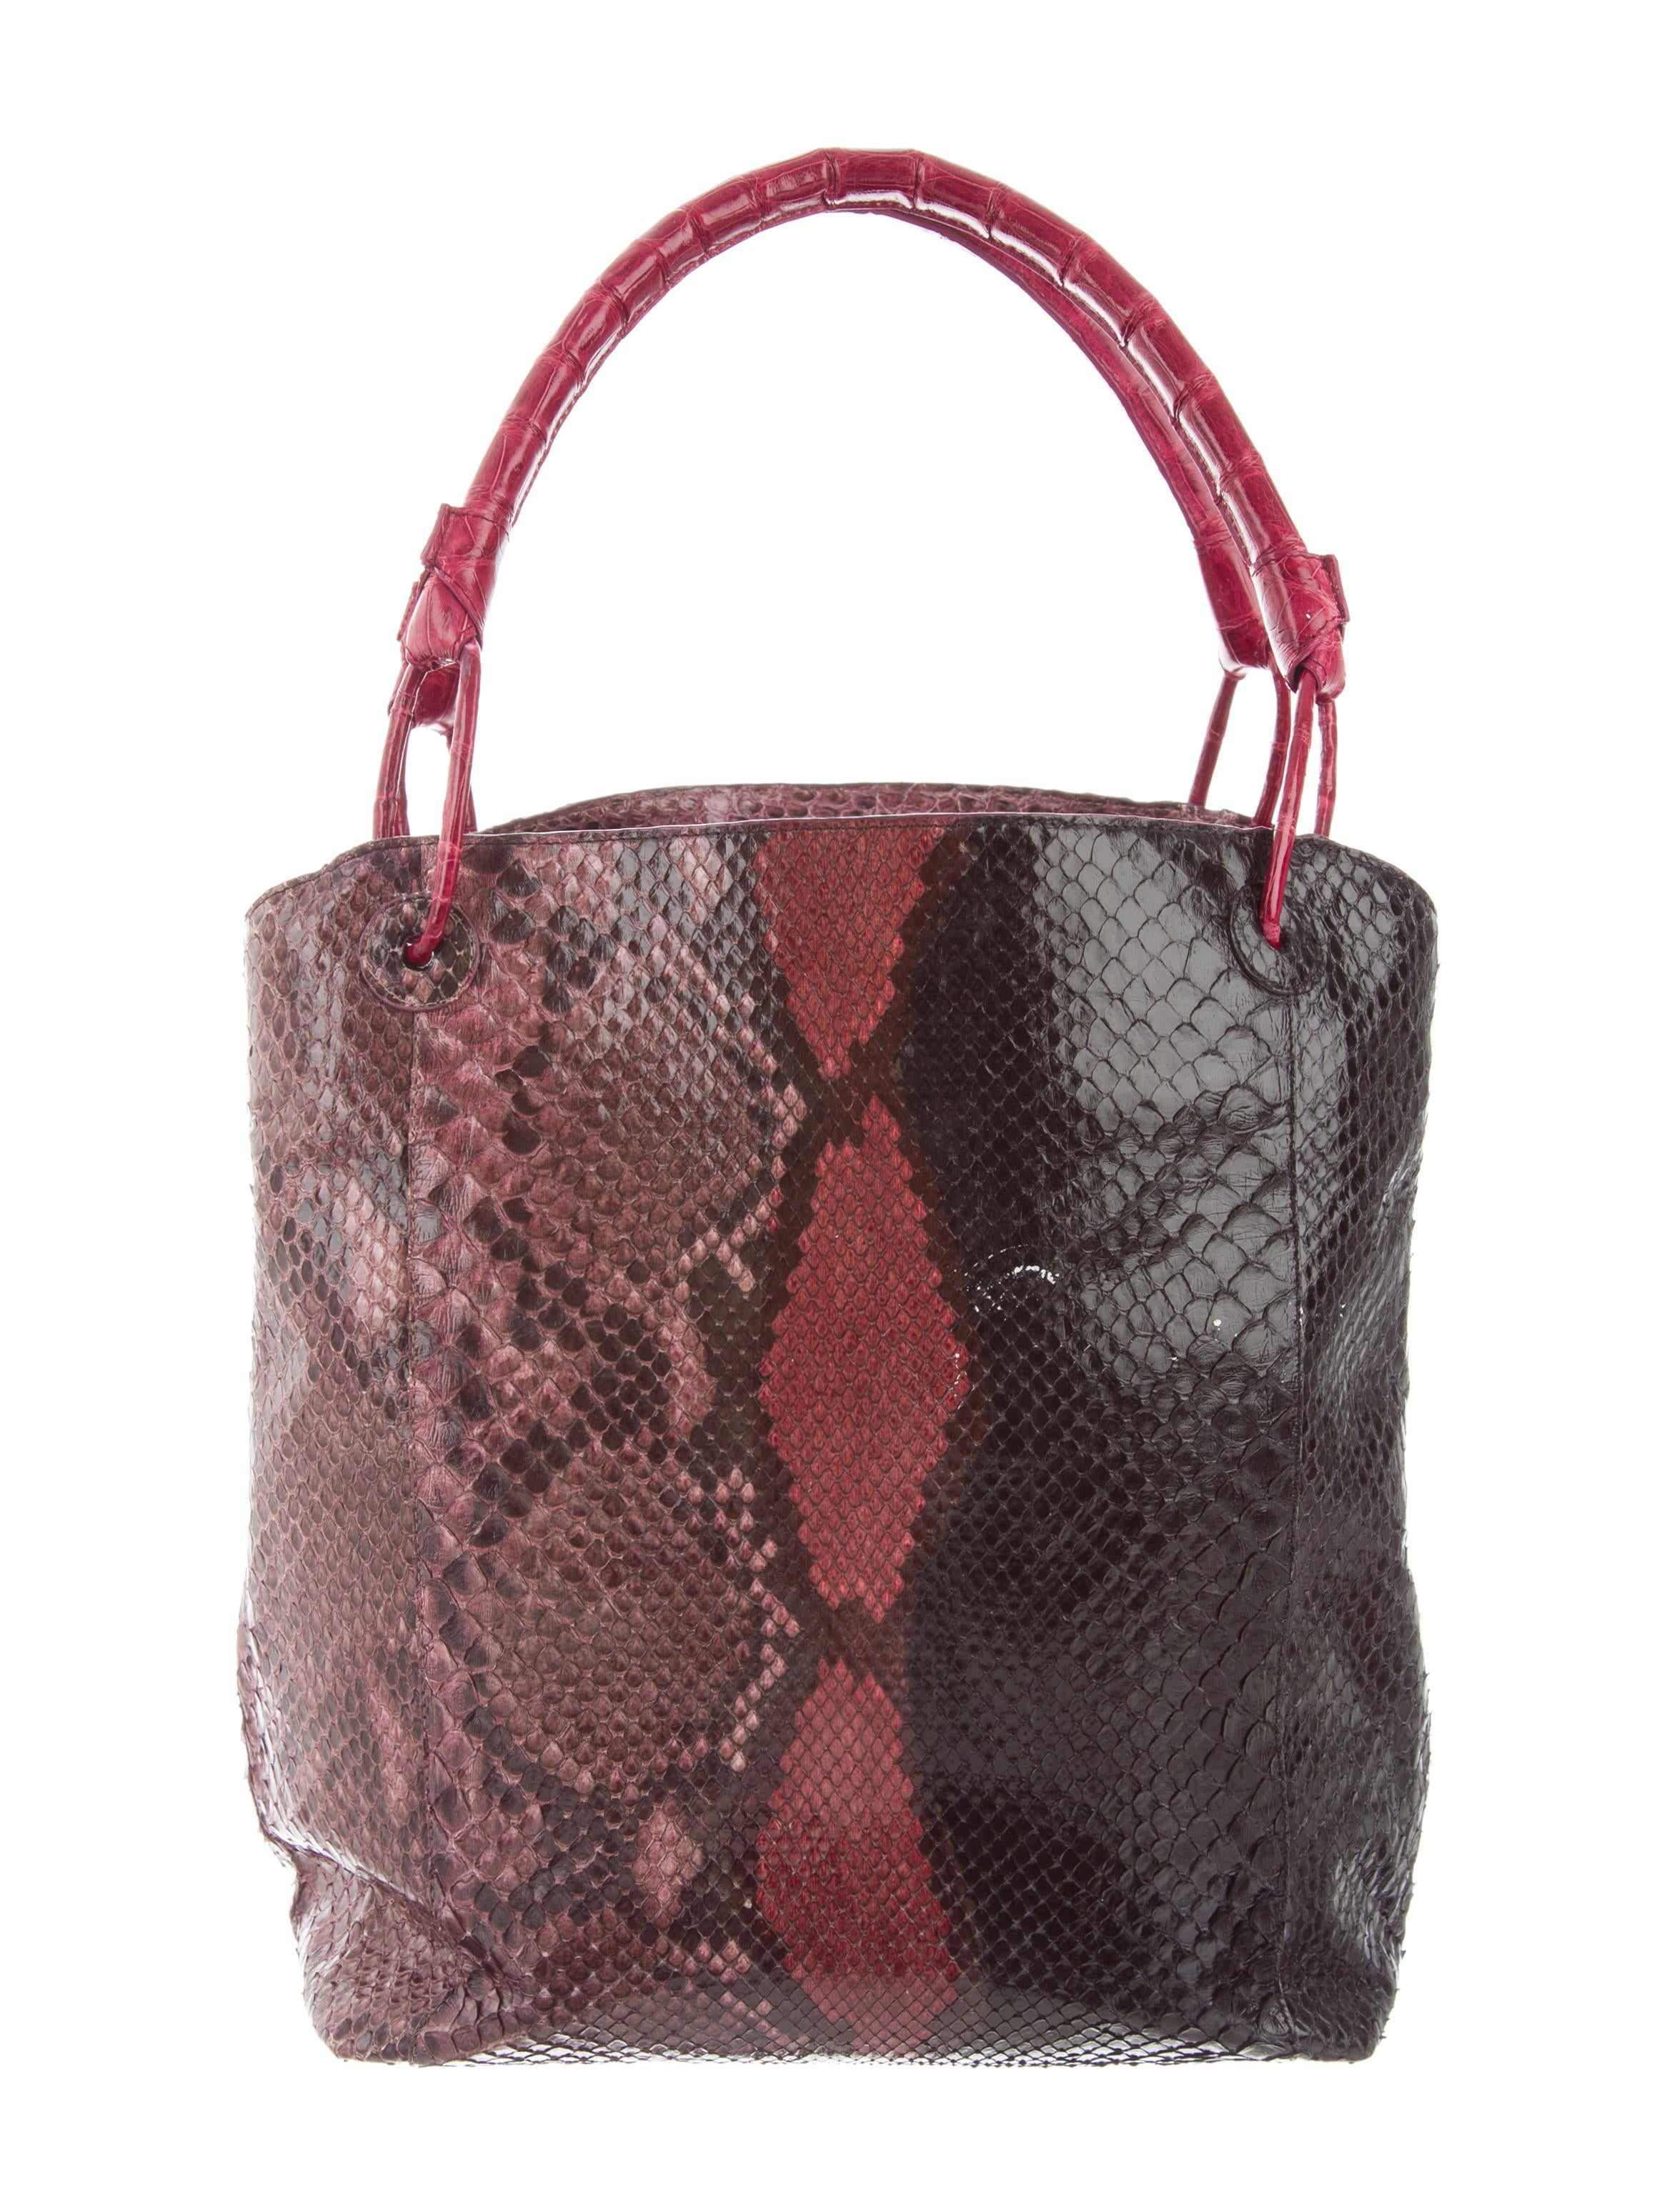 Nancy gonzalez python crocodile tote handbags for Nancy gonzalez crocodile tote